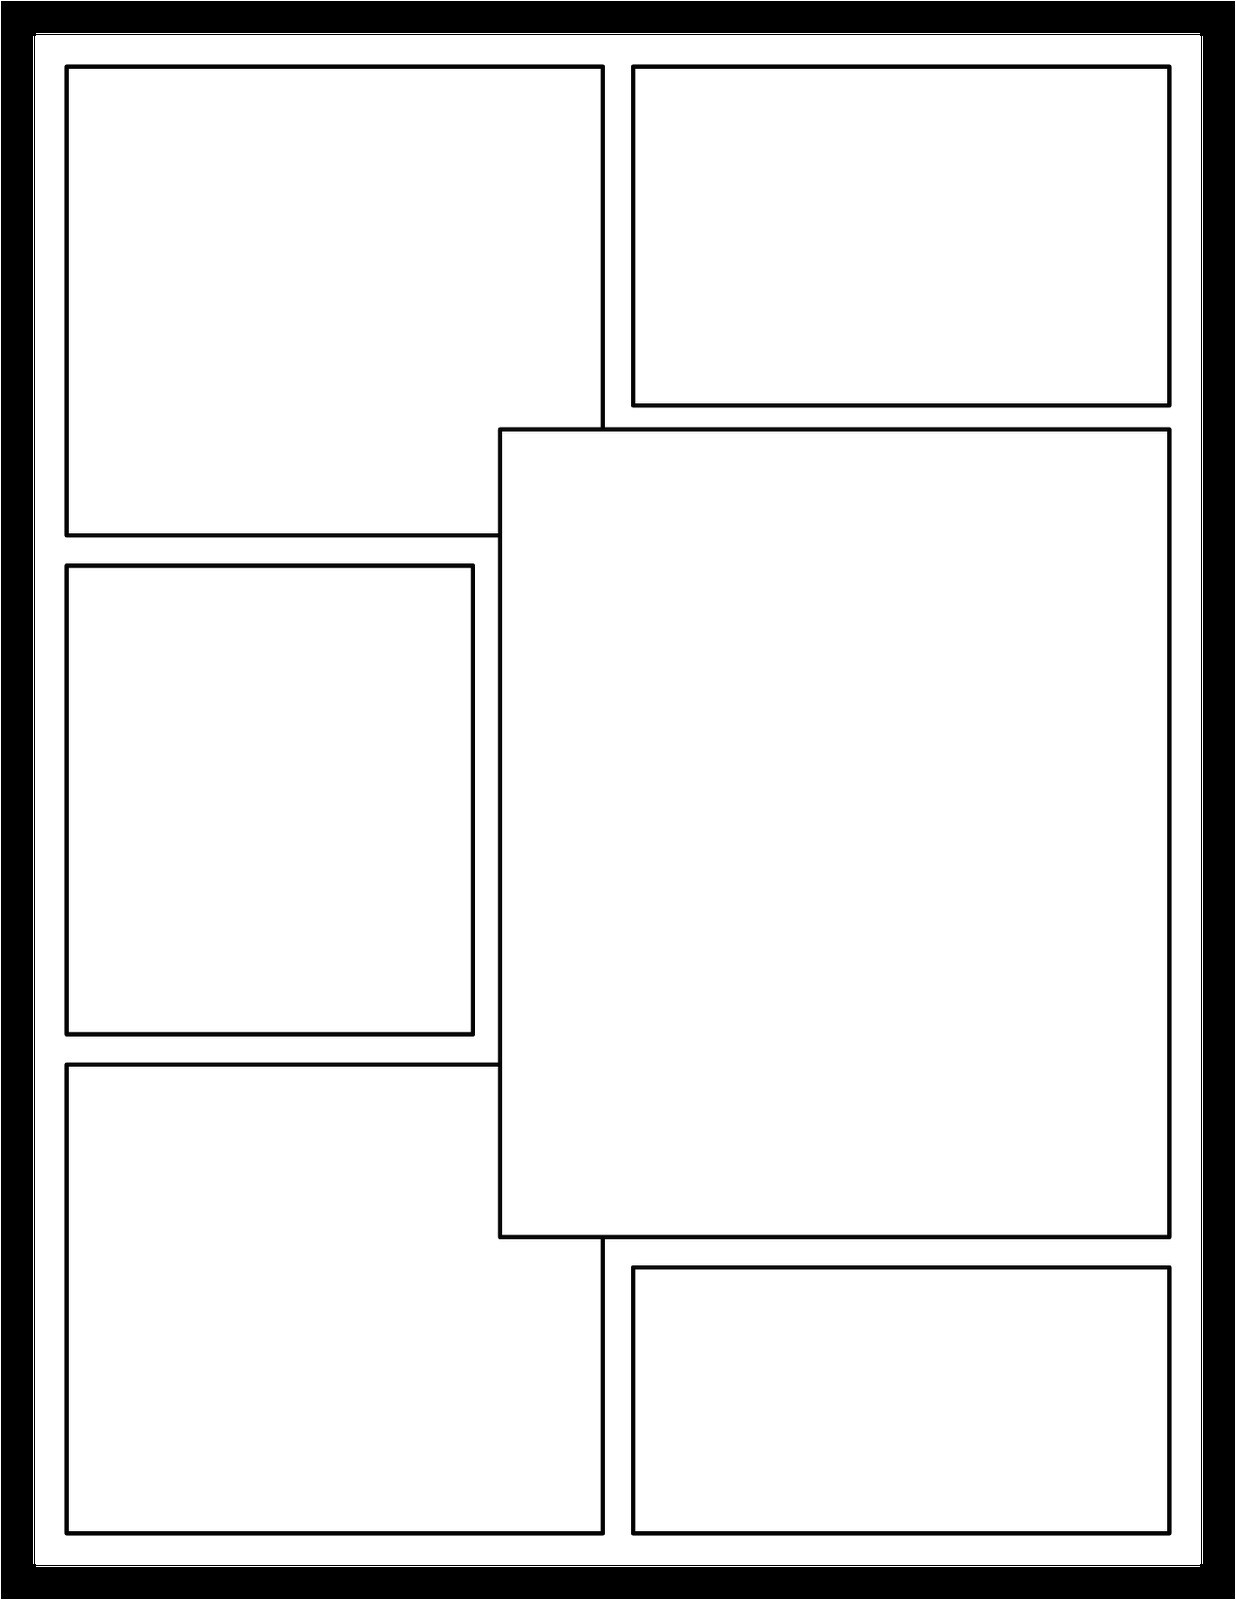 Comic Template Creator Mrs orman 39 S Classroom Offering Choices for Your Readers